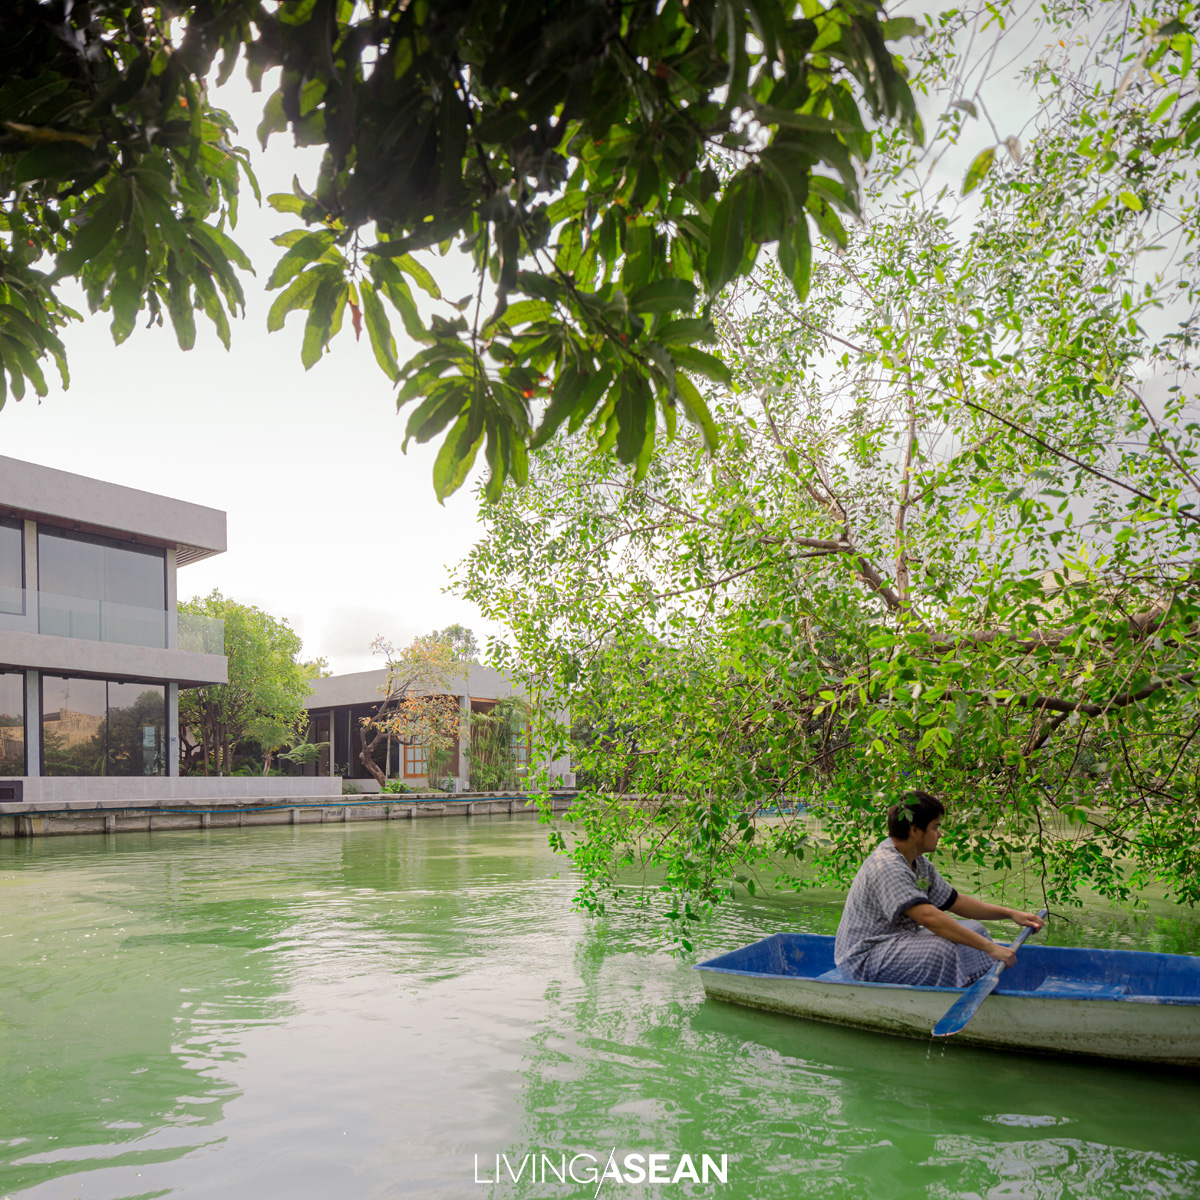 The homeowner rows his dinghy past drooping branches of a Lampoo or cork tree (Sonneratia caseolaris L. Engl.). The lake is home to many carp that he has raised since they were young. He sometimes catches snakehead fish for food.